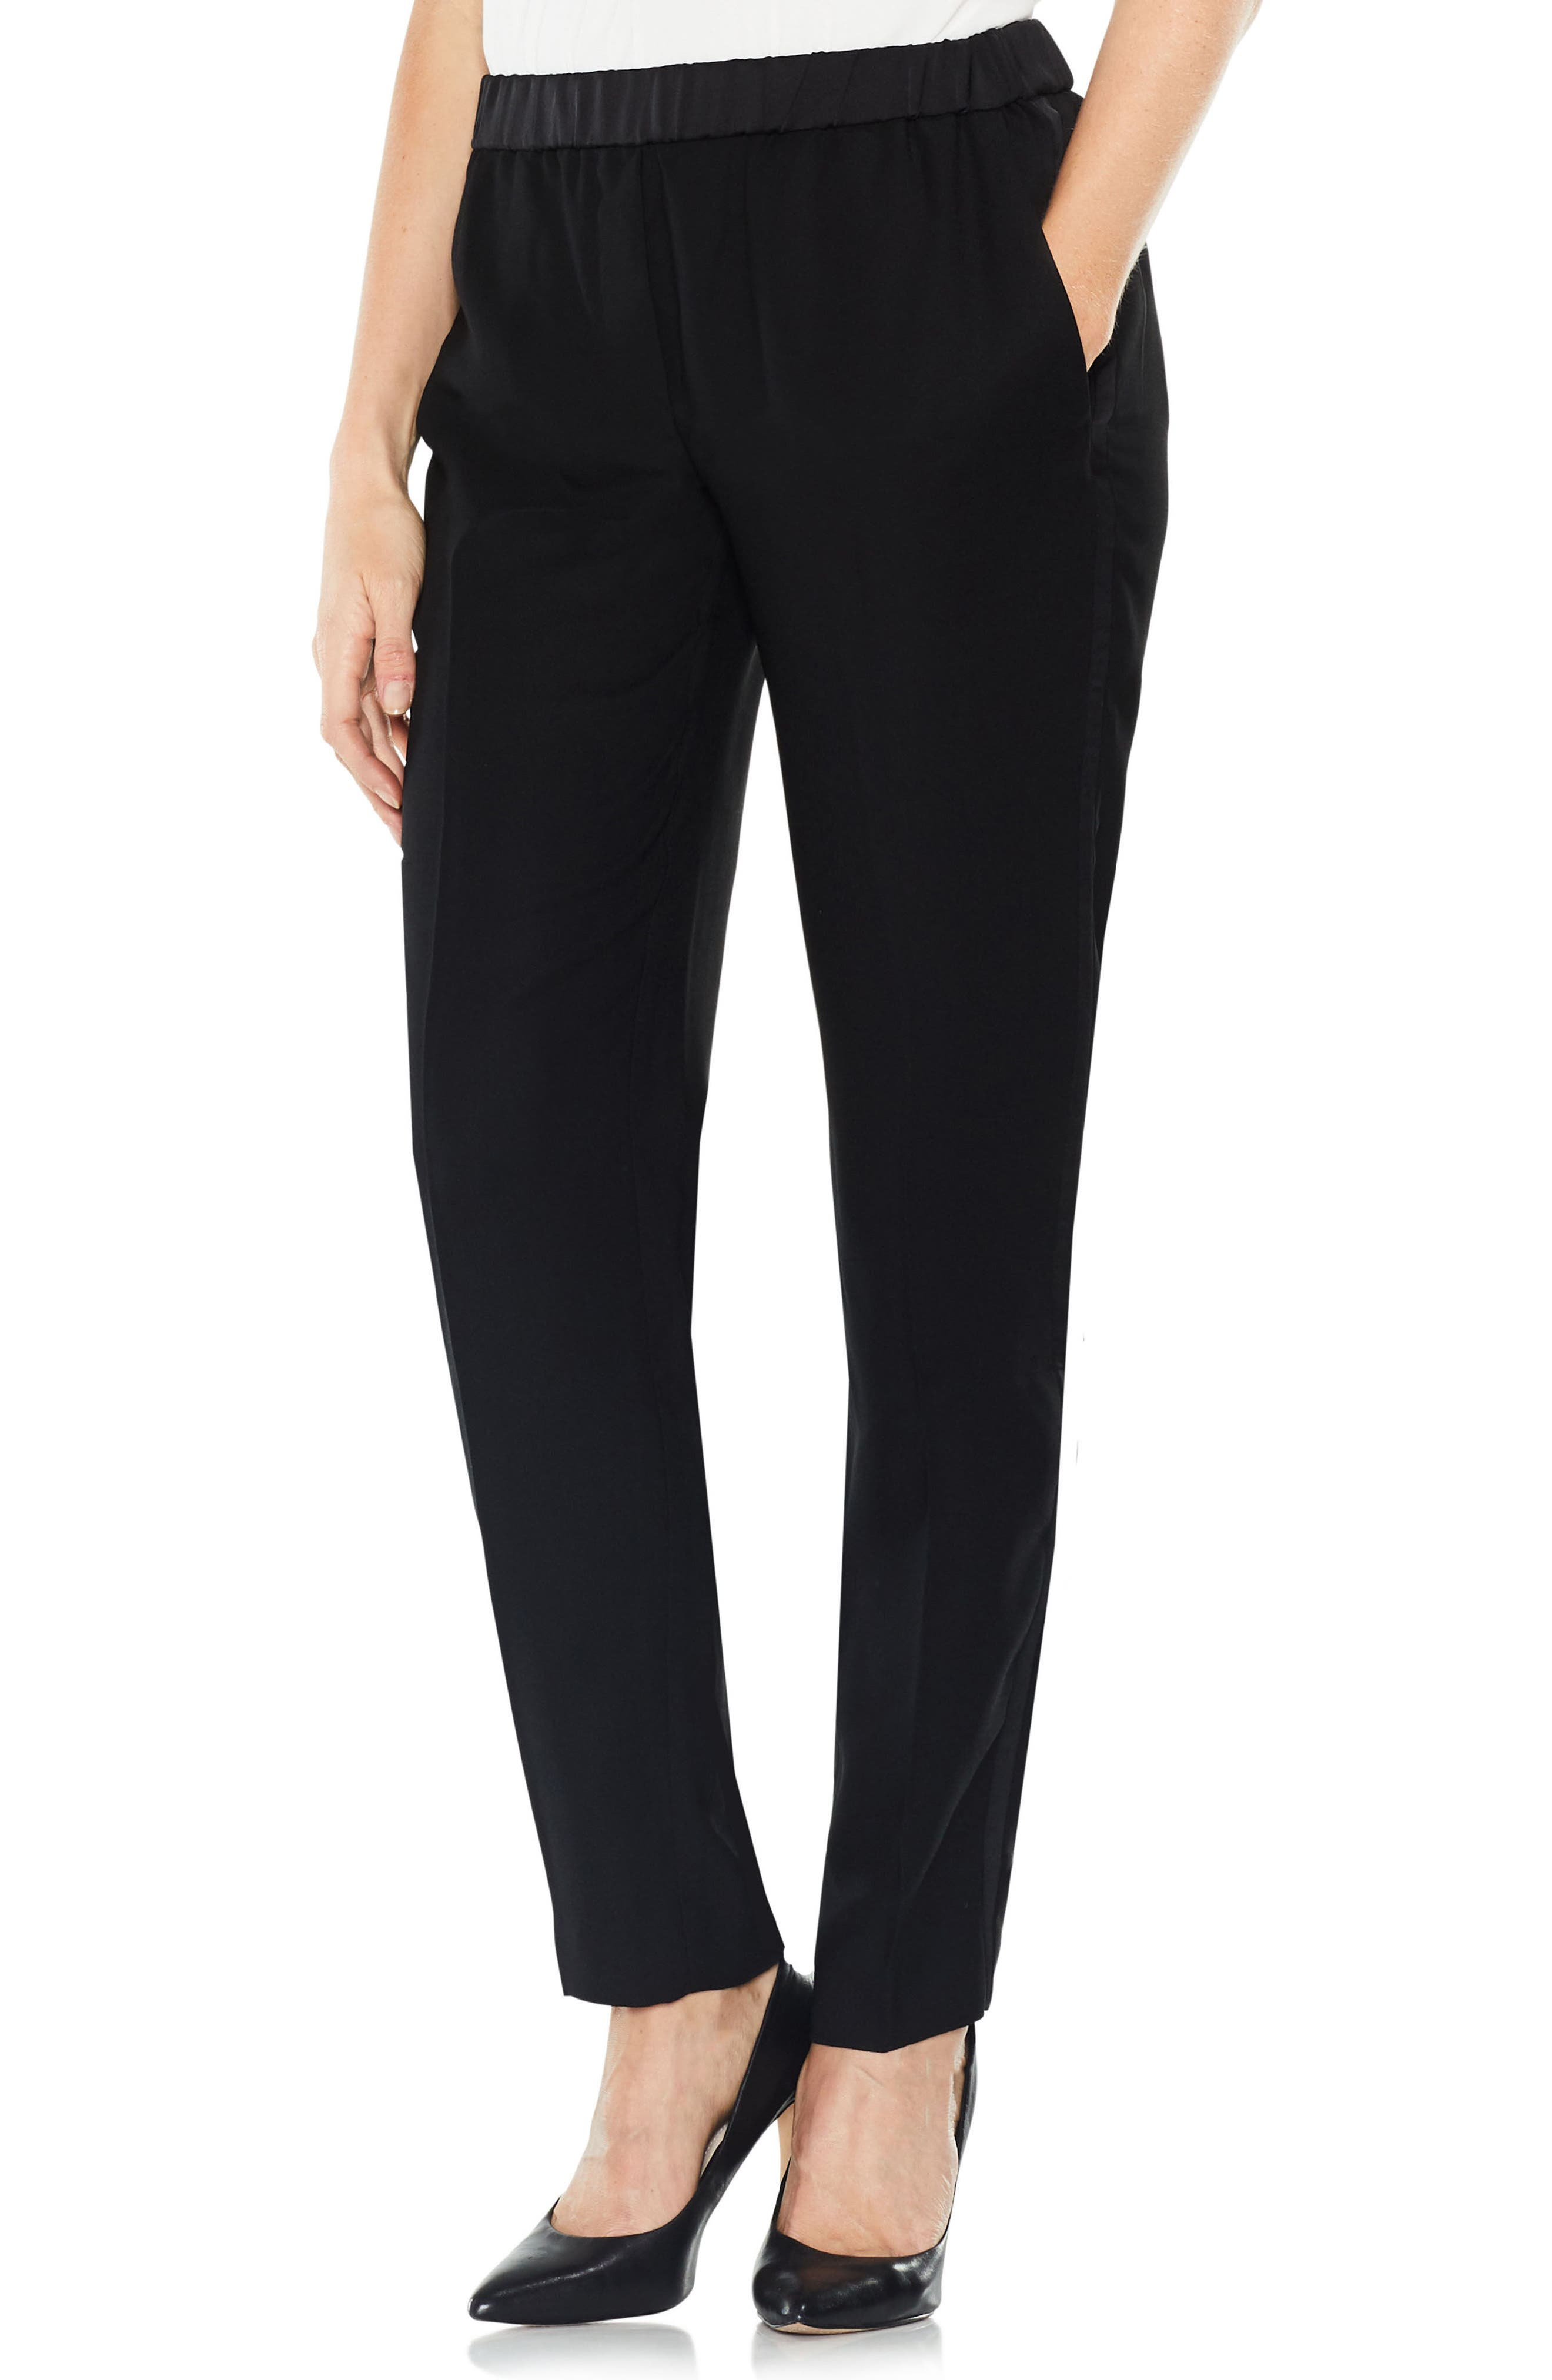 Alternate Image 1 Selected - Vince Camuto Matte Shine Slim Leg Crepe Pants